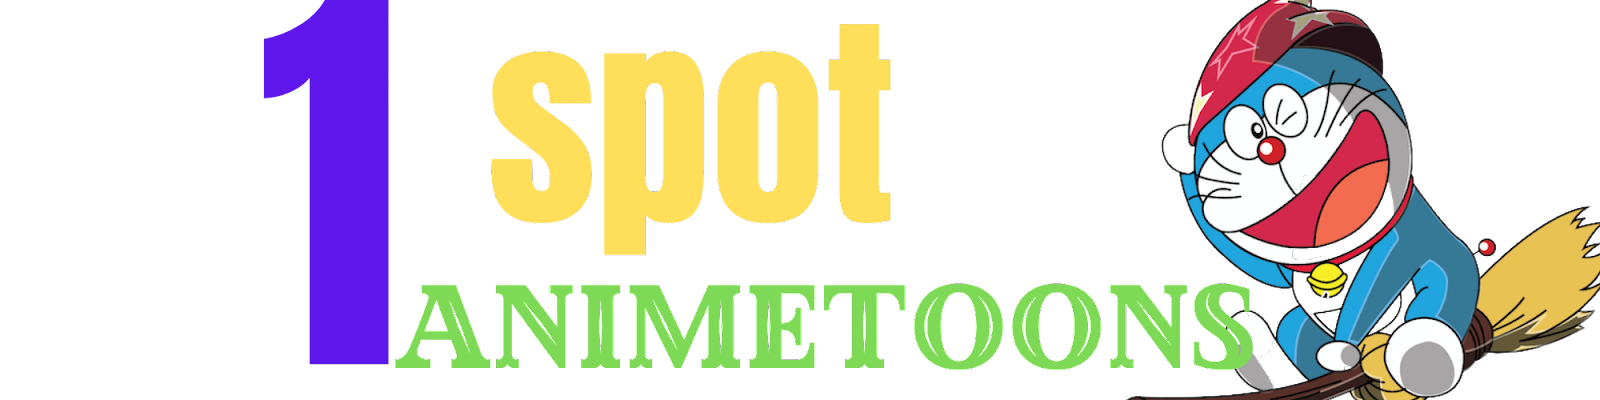 1spot AnimeToons-watch or download your favorite anime&cartoons